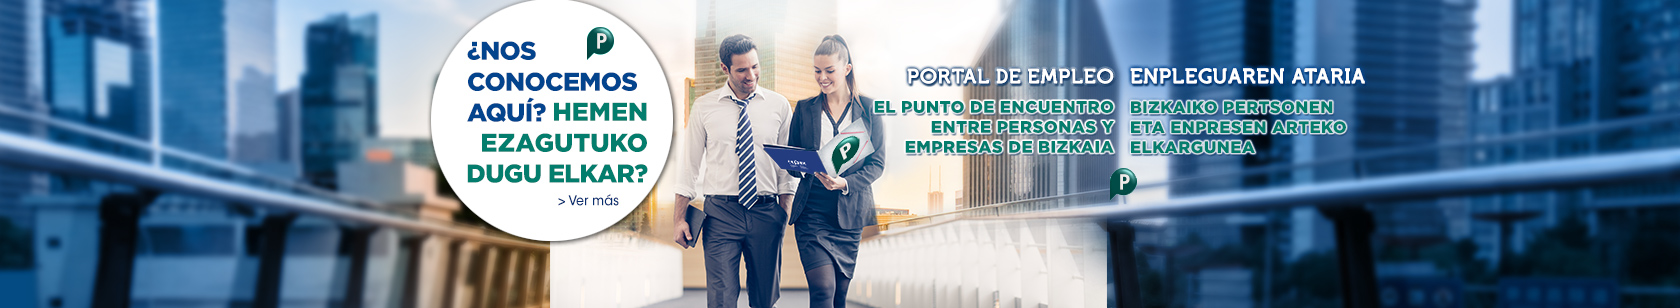 slider-portaldeempleo-oct2016-final